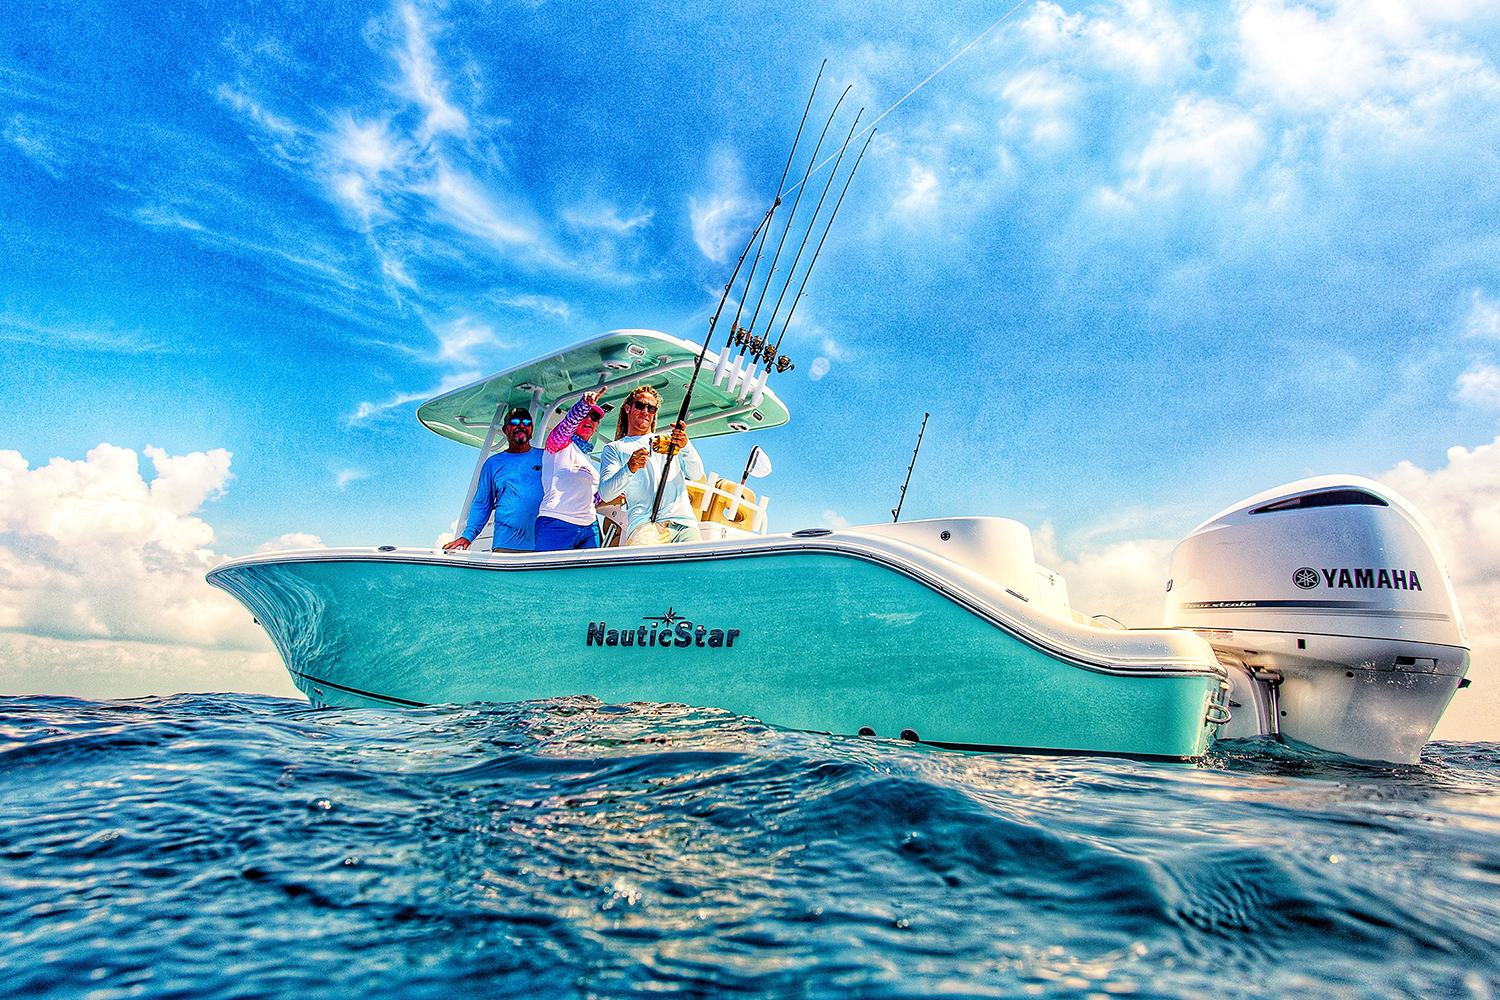 Man fishing on a NauticStar 28 XS with a woman pointing out to sea and a man watching